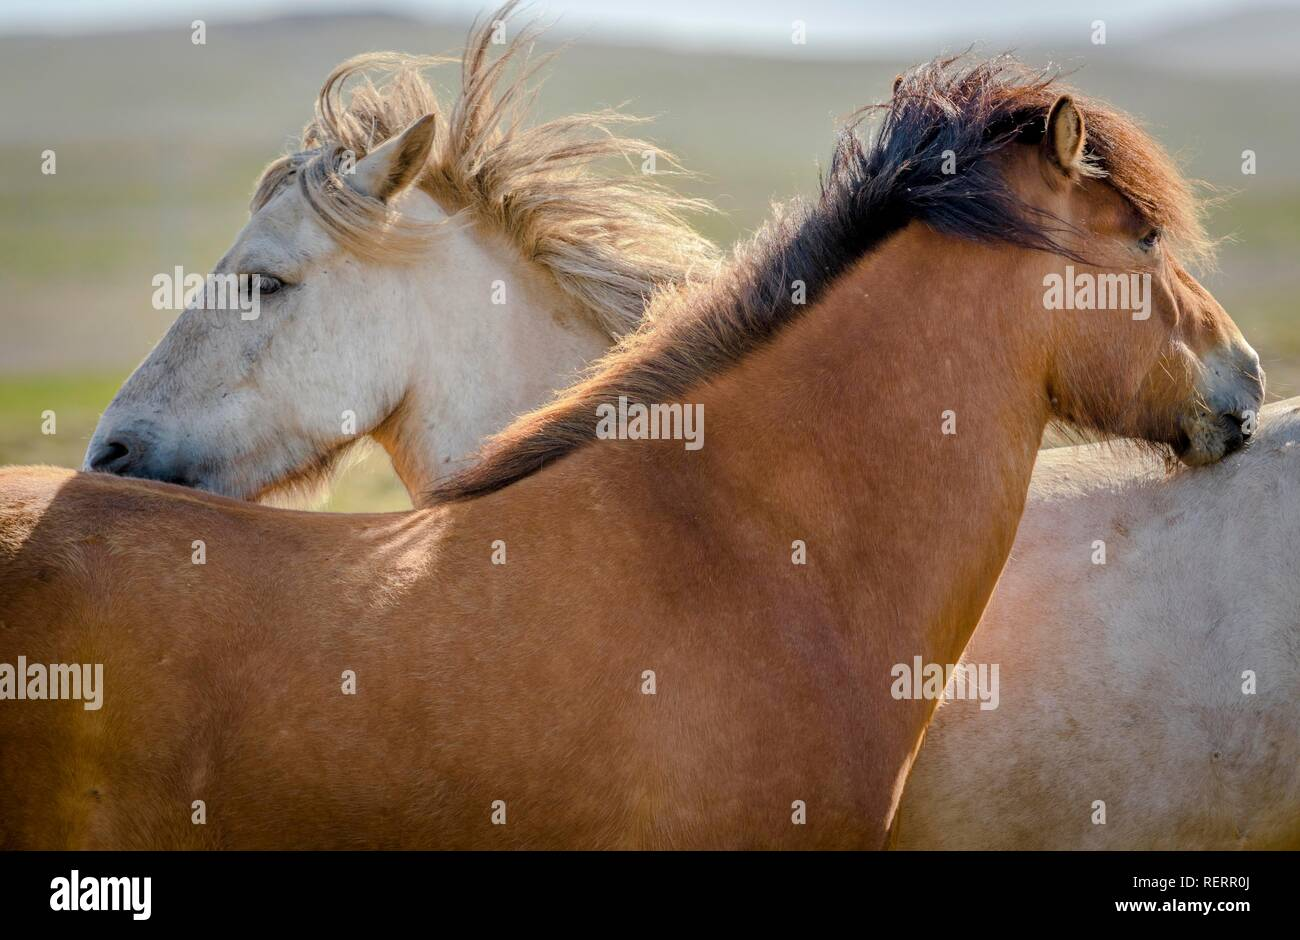 Two Icelandic horses, white and brown, grooming their fur on pasture, wind blowing in mane, Sauðárkrókur, Akrahreppur - Stock Image